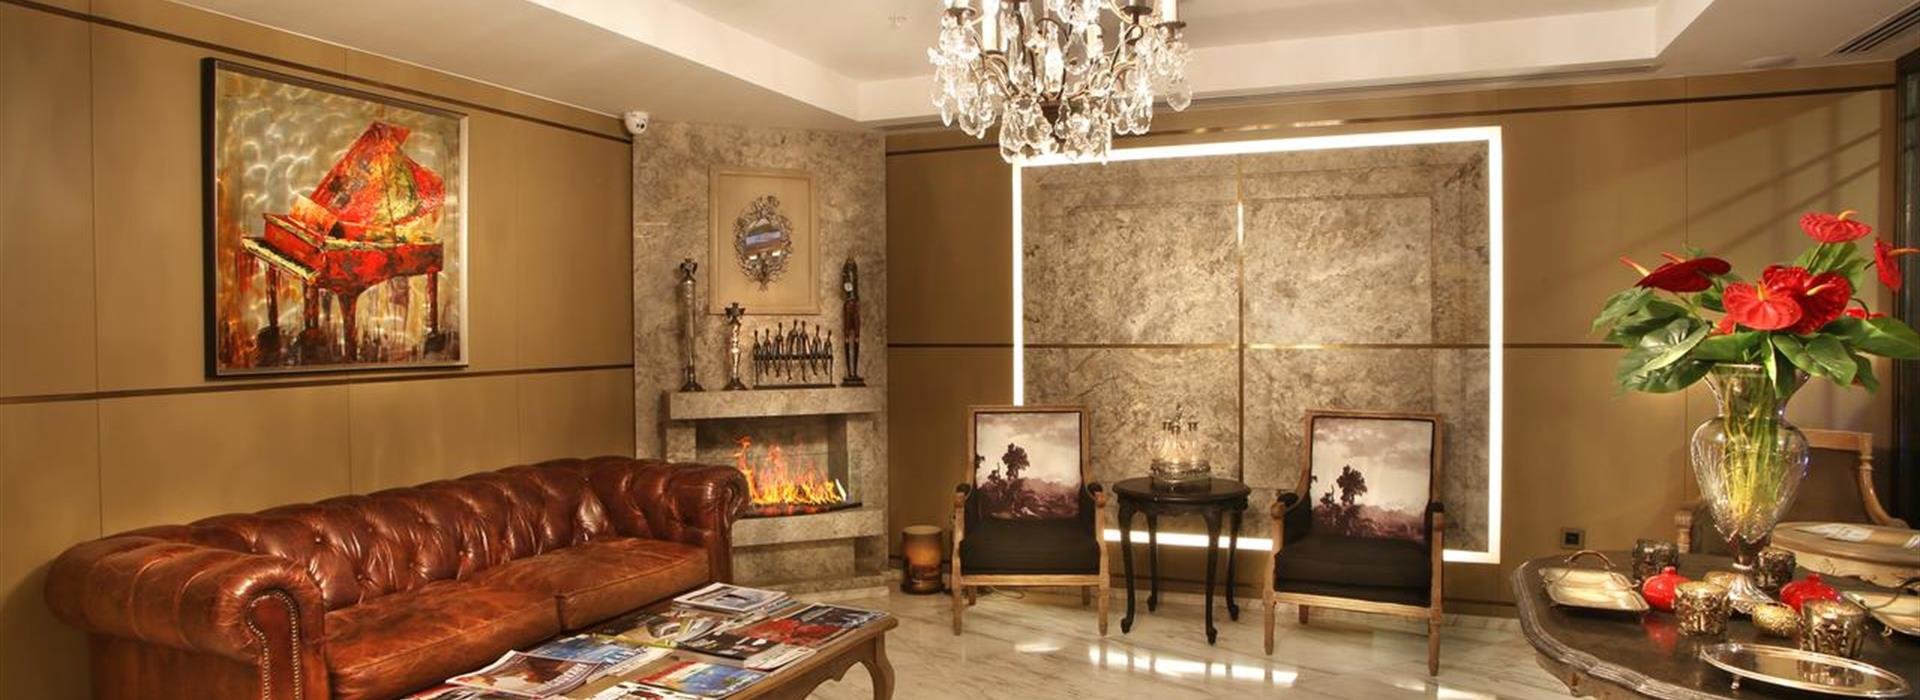 berjer-boutique-hotel-and-spa